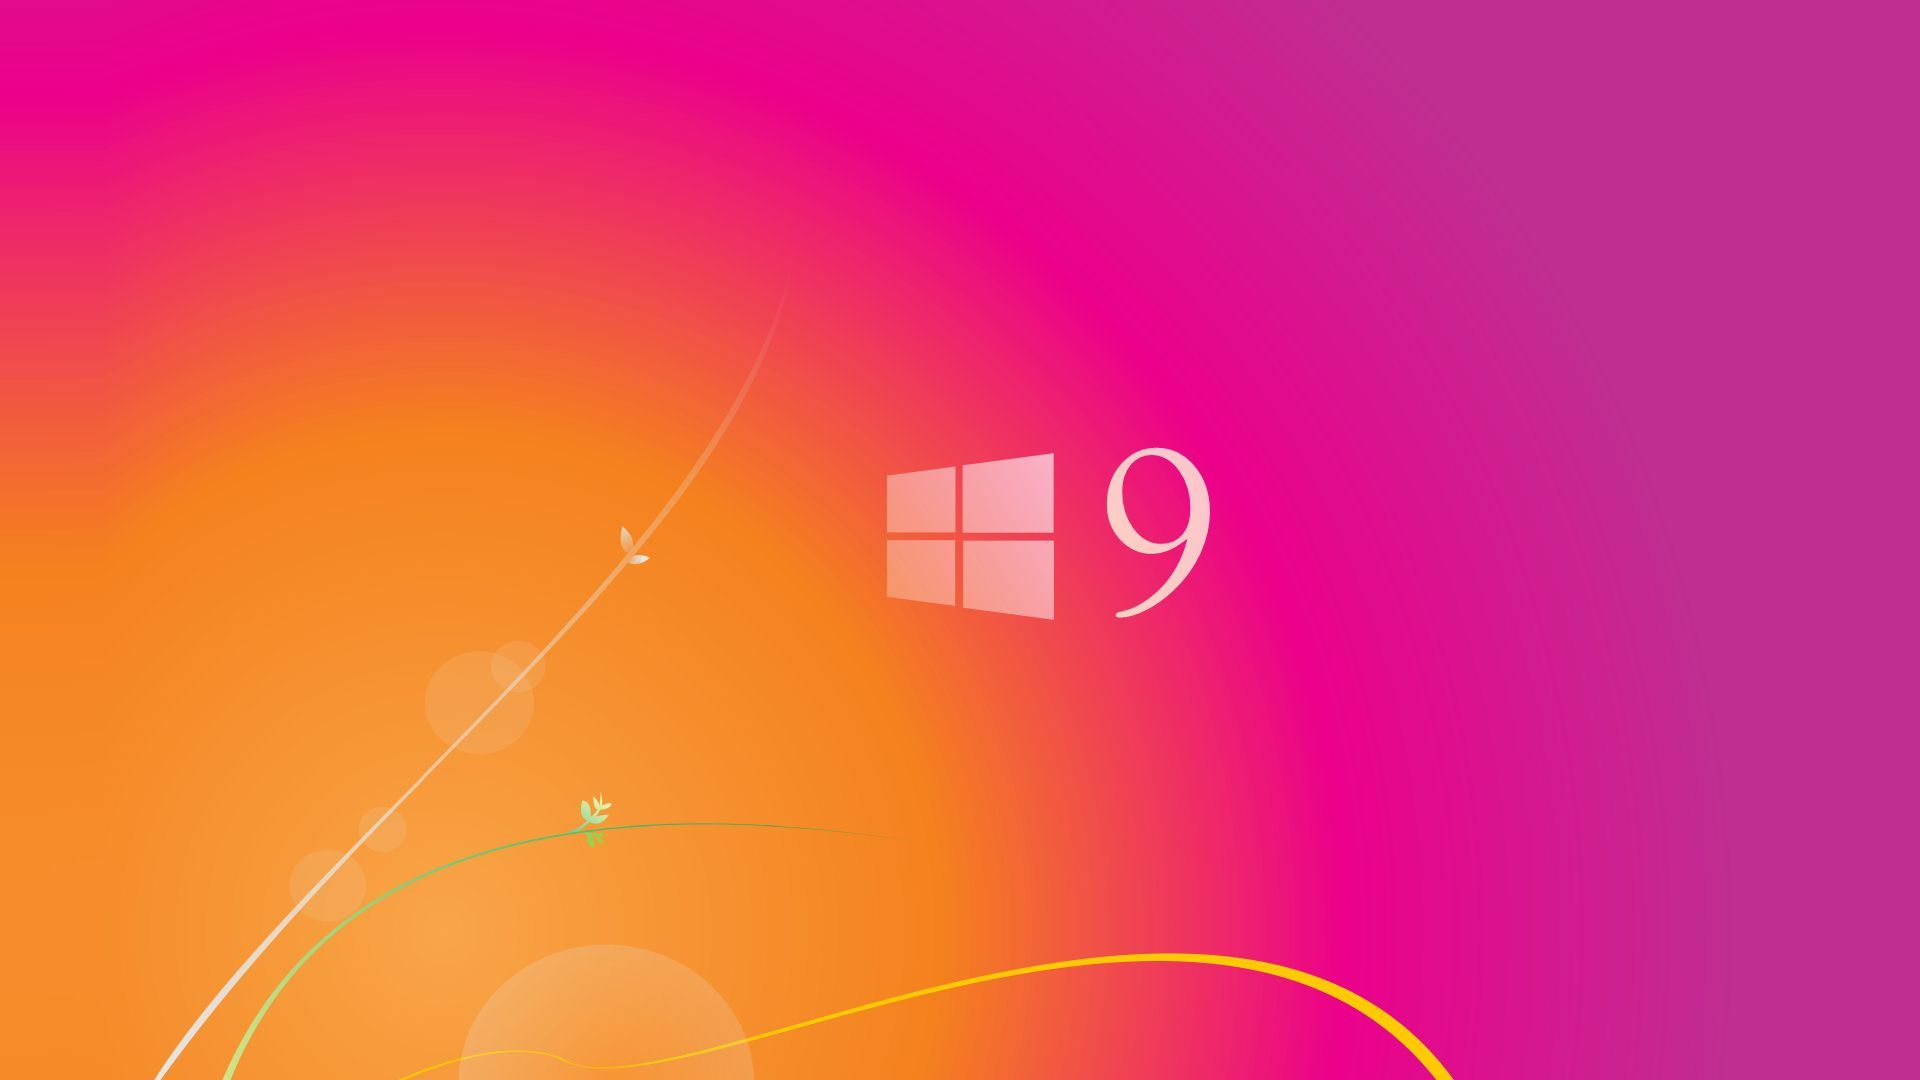 Windows Hd Wallpapers Backgrounds Wallpaper X Wallpapers  Wallpapers